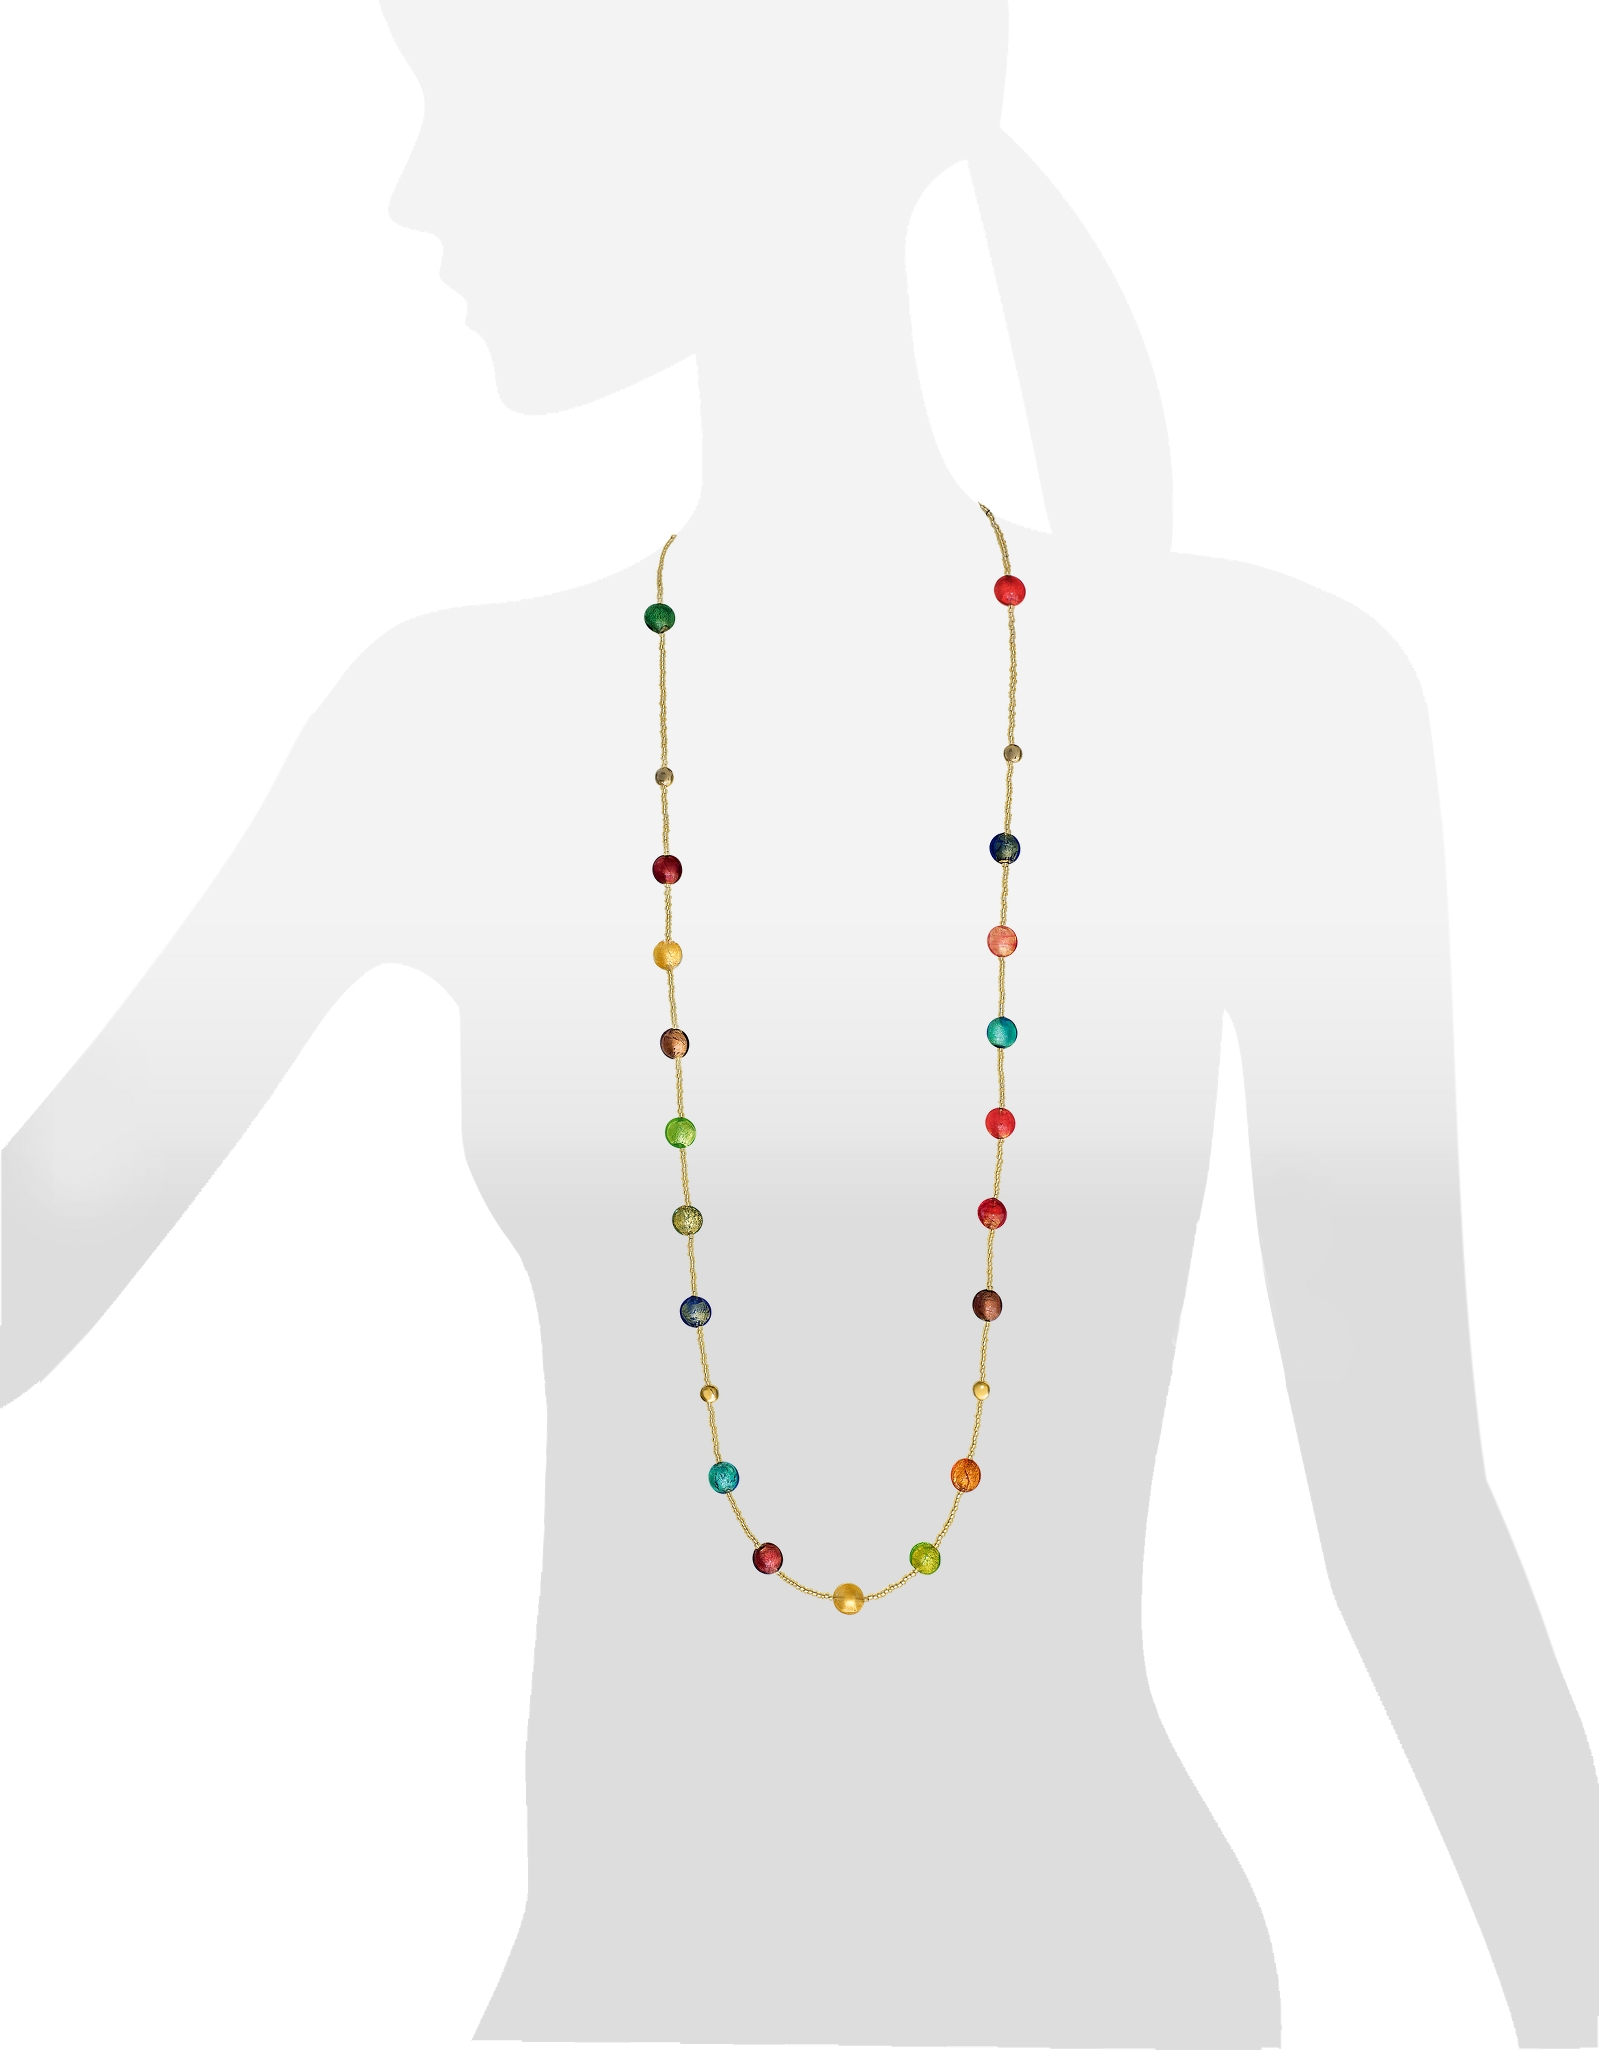 Lyst antica murrina frida murano glass long necklace in metallic gallery mozeypictures Choice Image